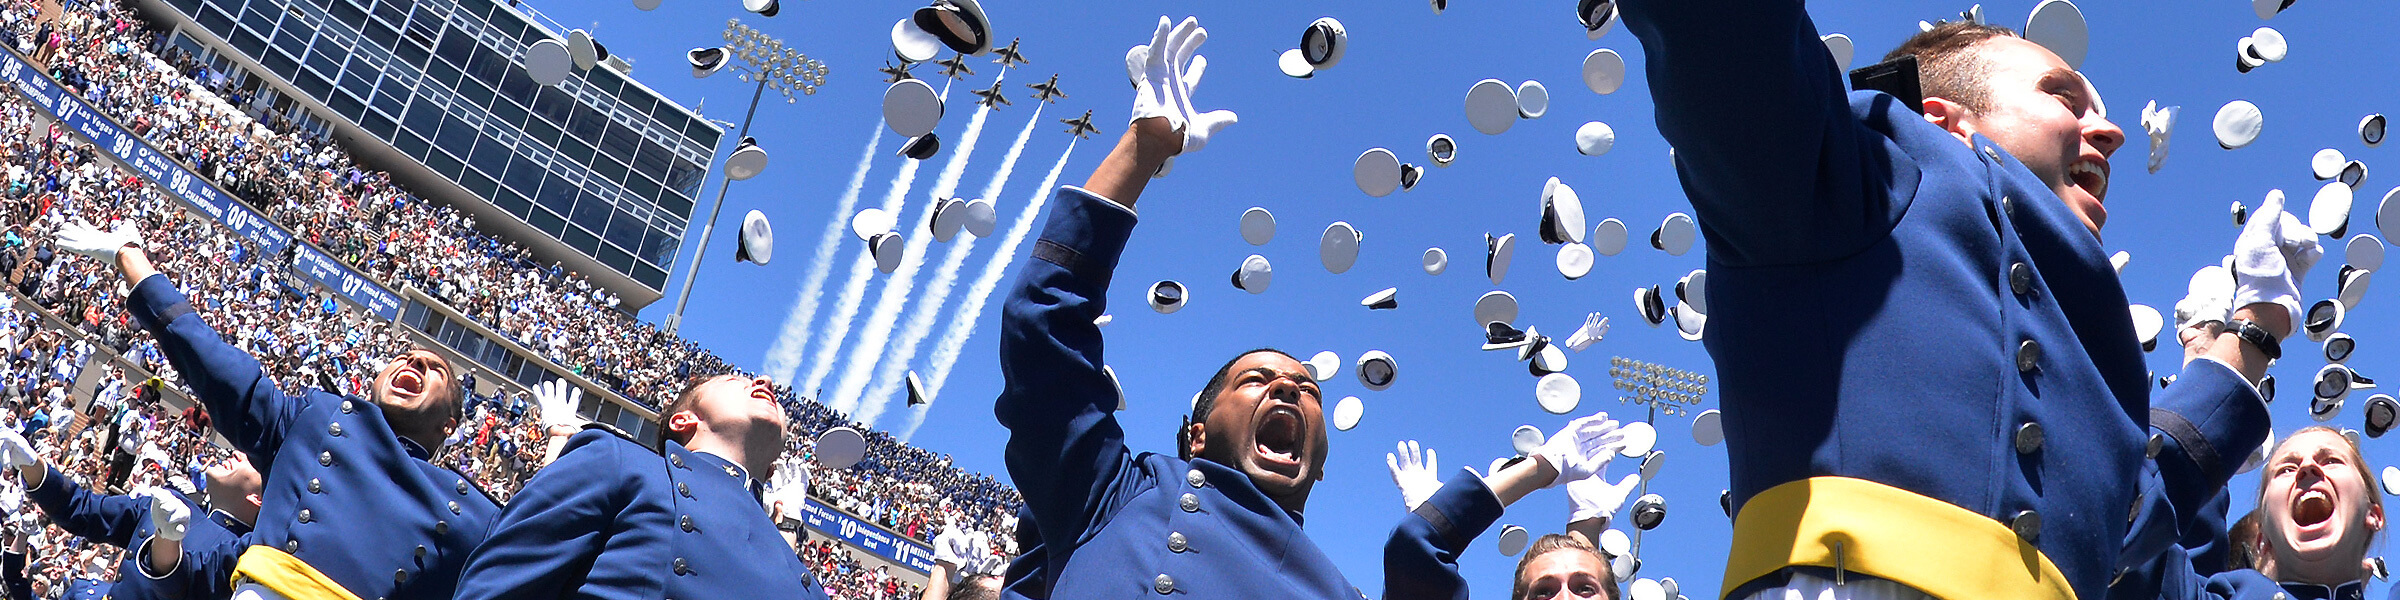 Banner image for graduation 2018 showing the cade hat toss as Thunderbirds fly over head.